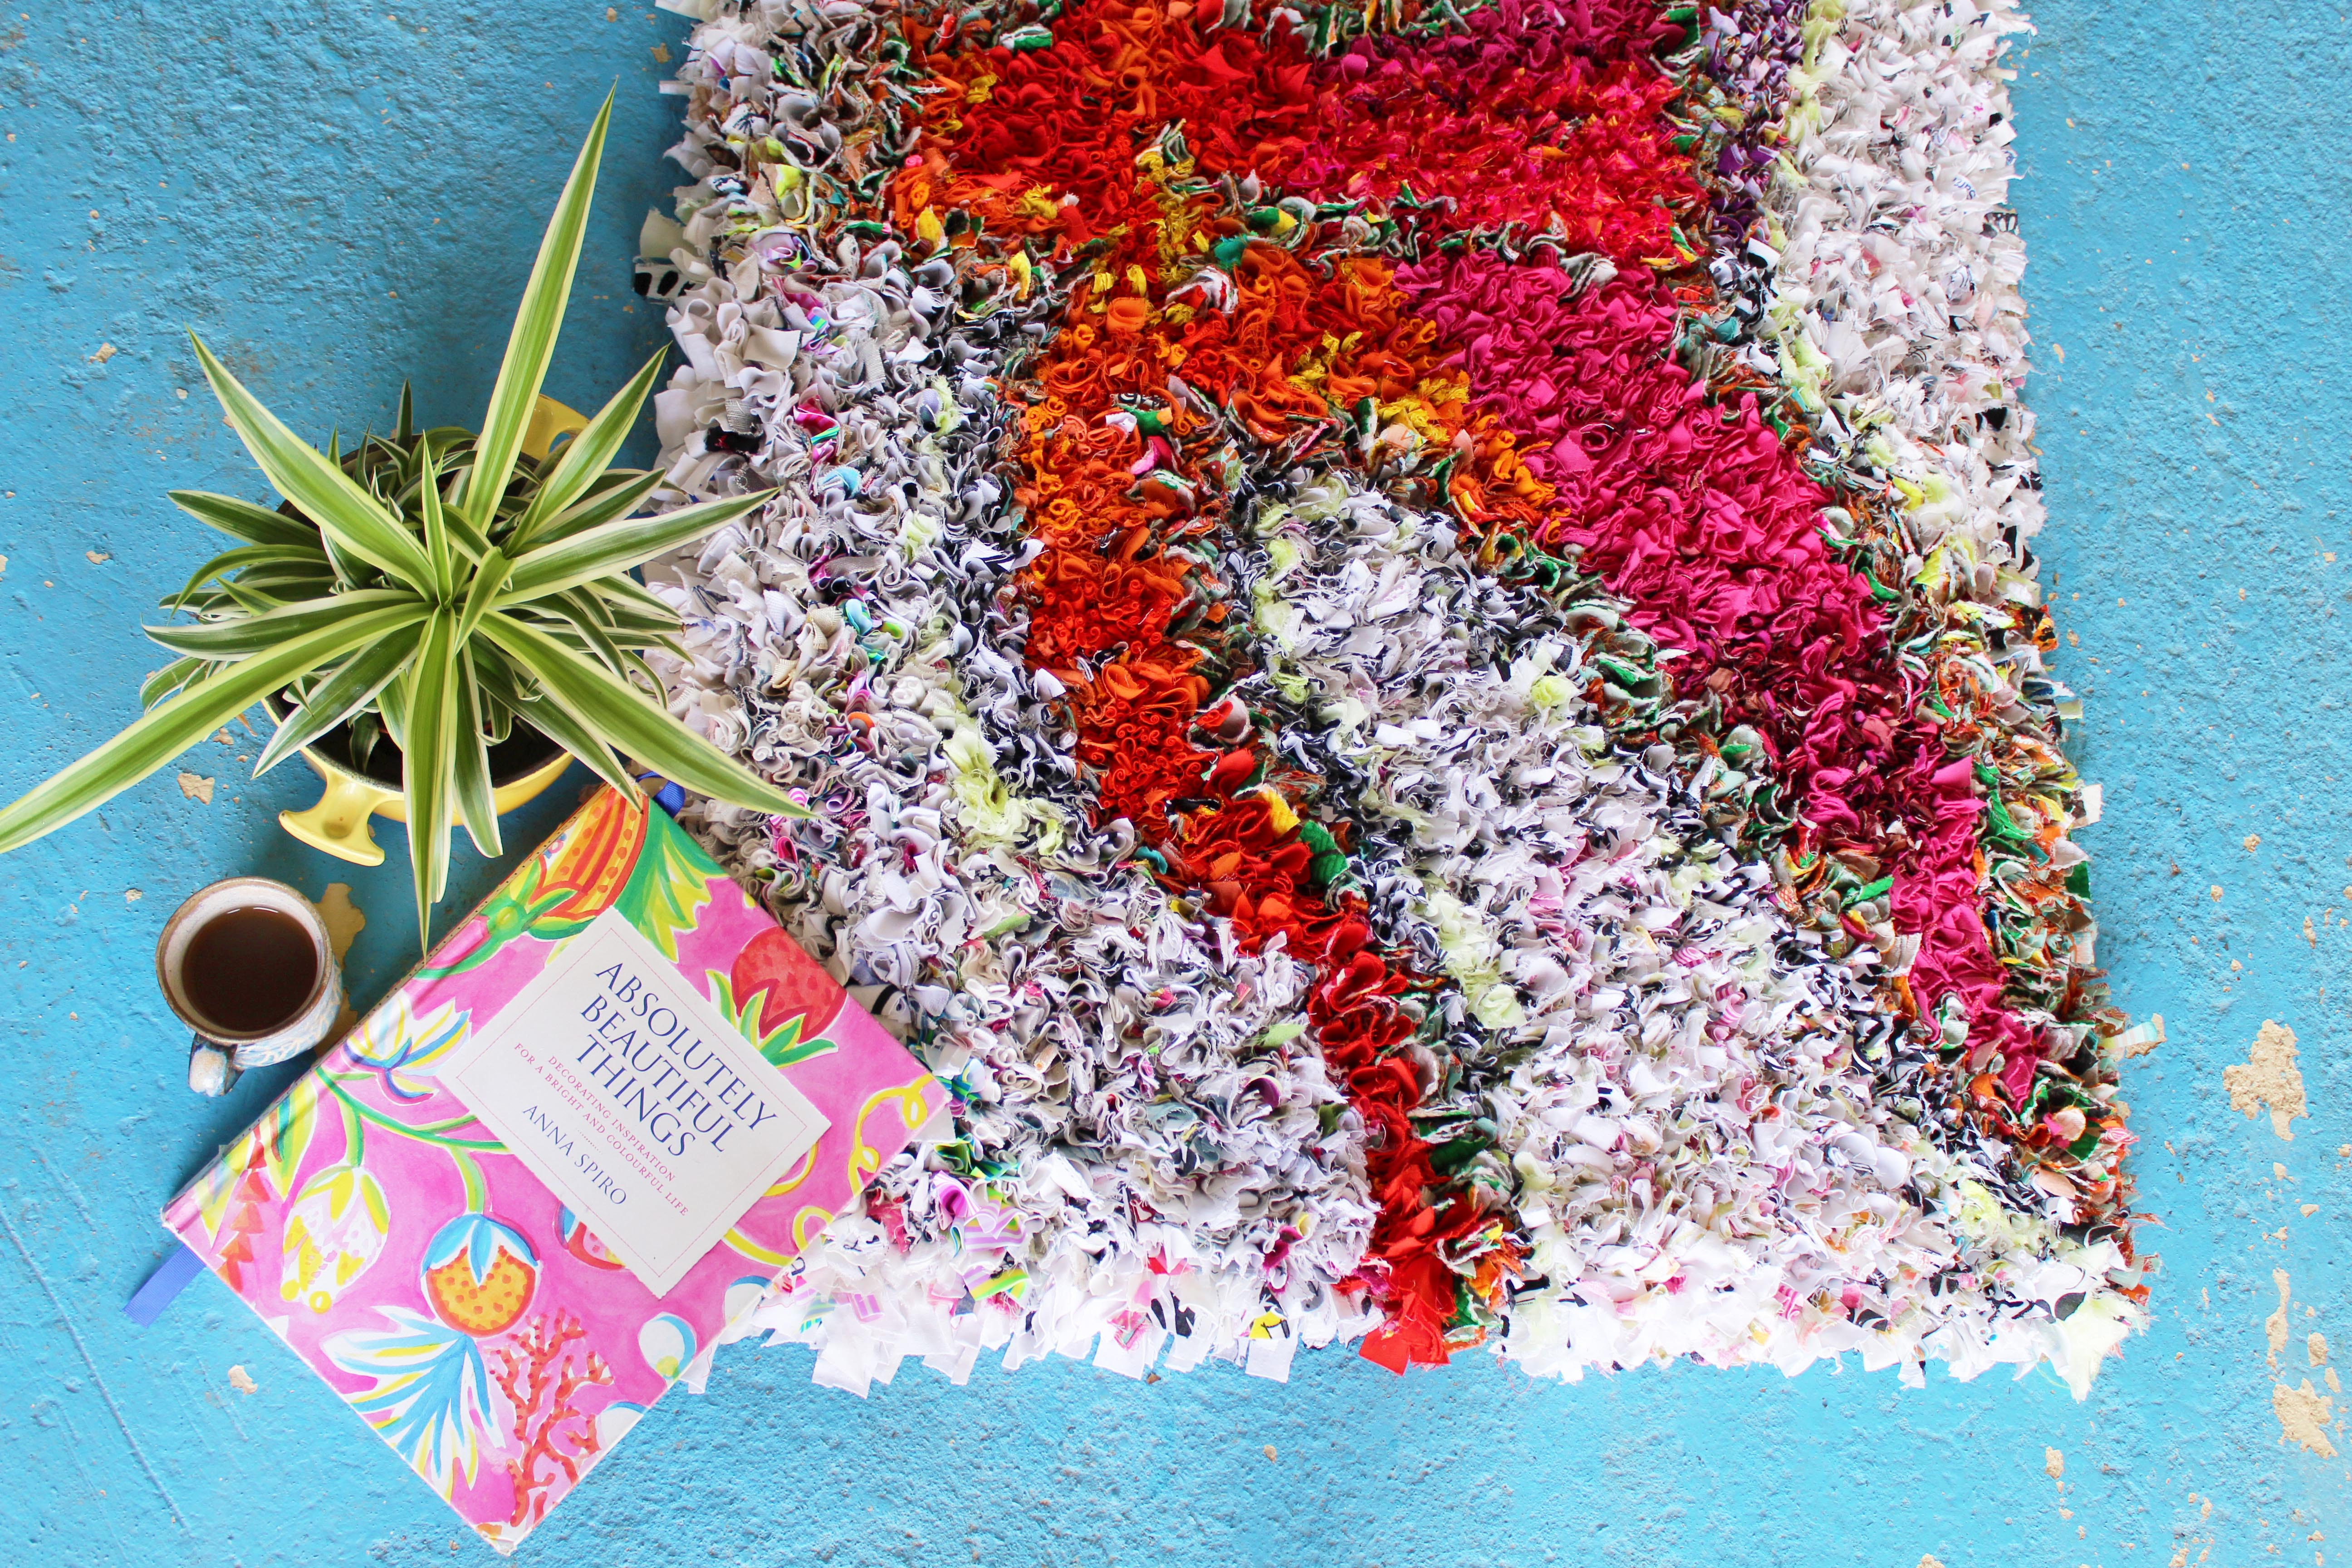 Absolutely Beautiful Things Book by Anna Spiro on top of a Rag Rug with a Palm and coffee